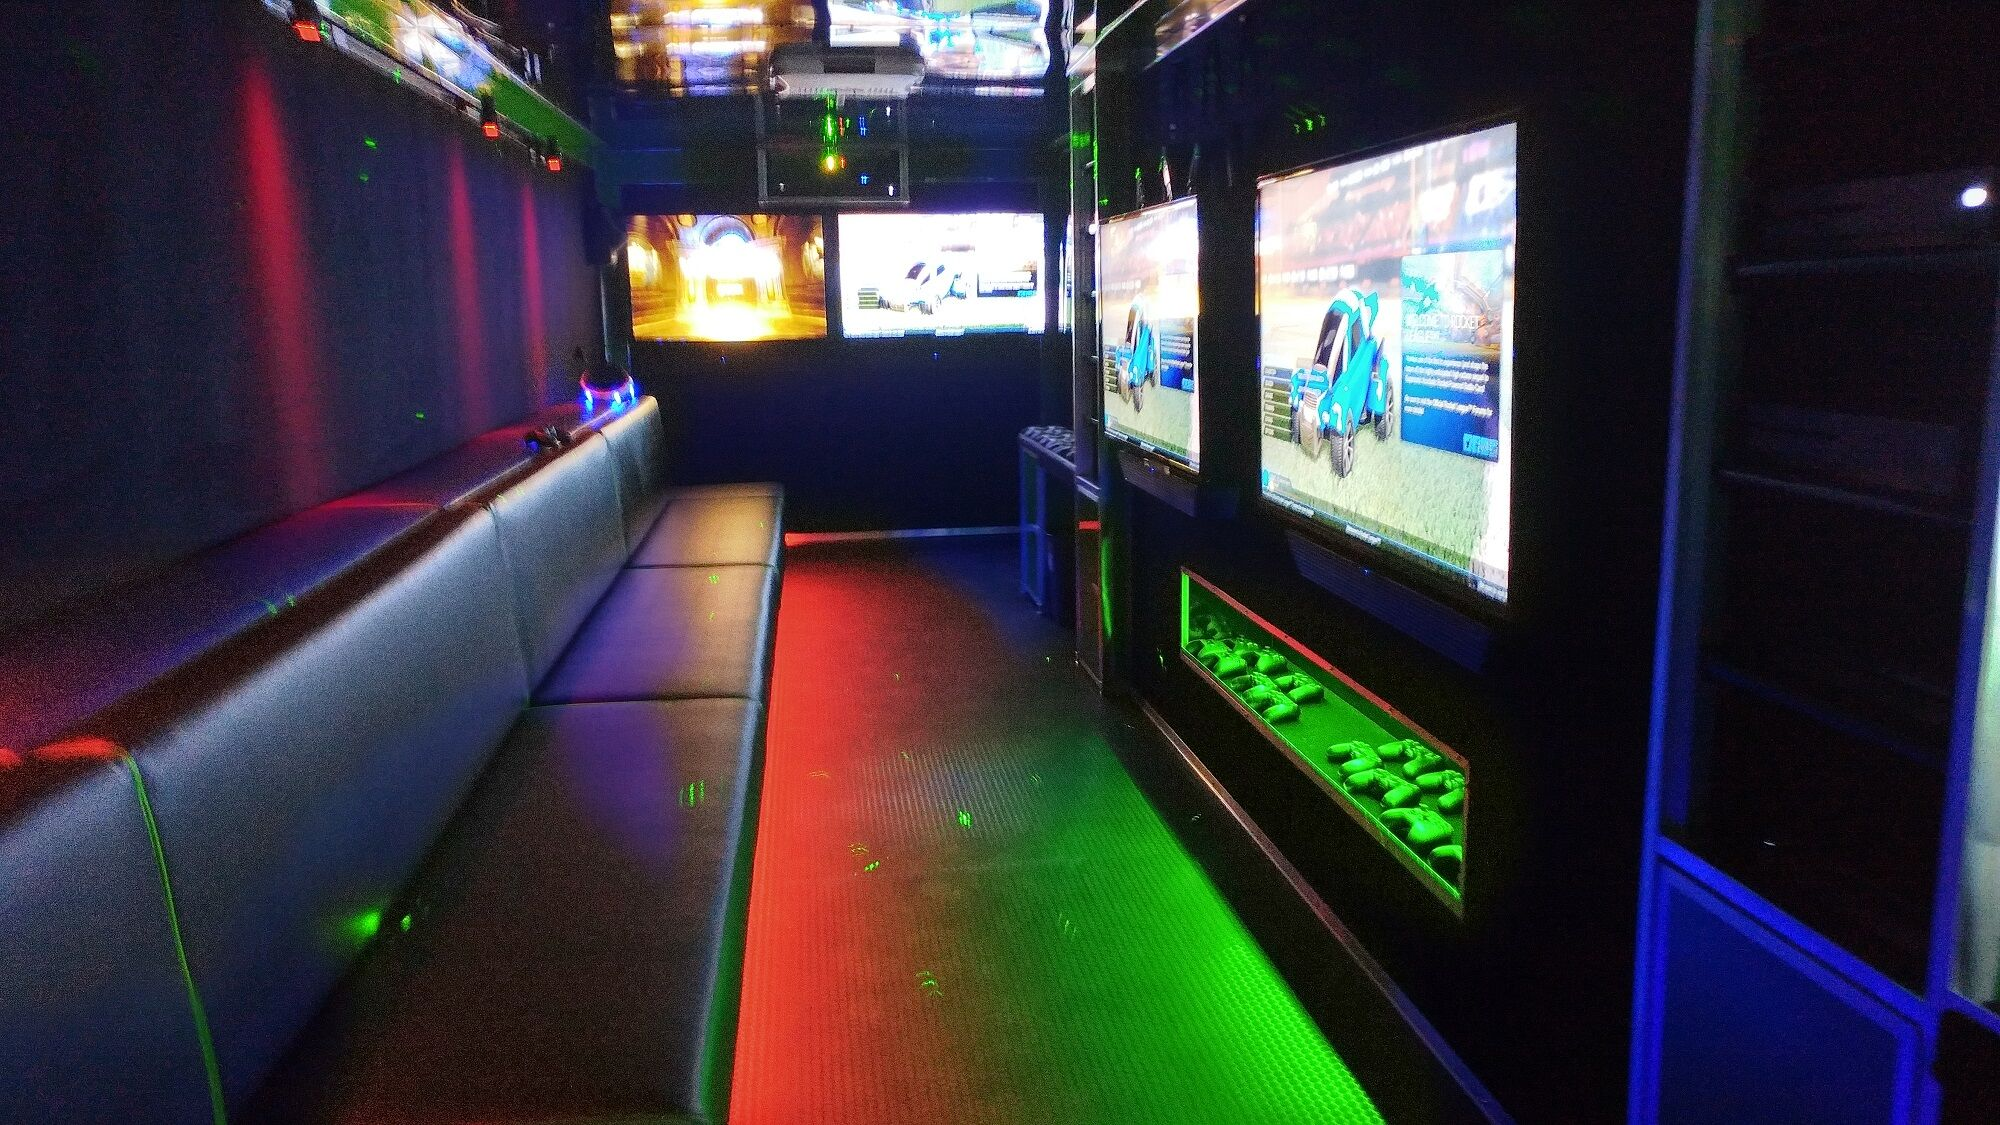 pinehurst-north-carolina-video-game-party-truck